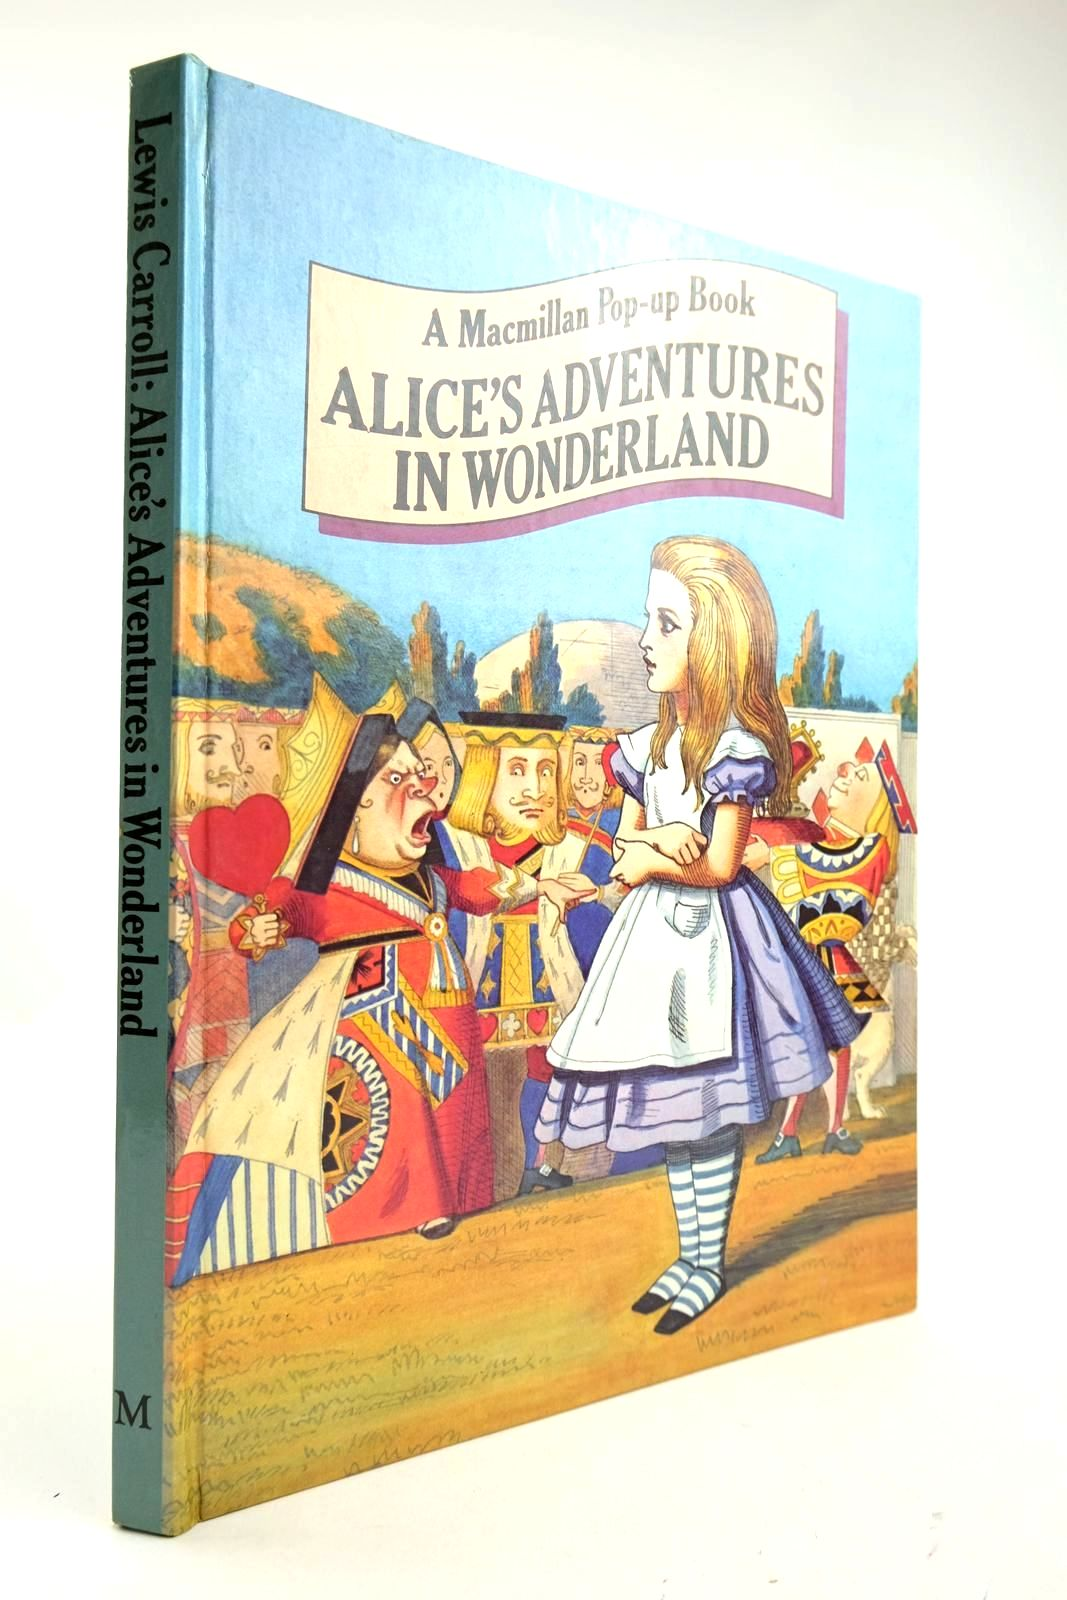 Photo of ALICE'S ADVENTURES IN WONDERLAND written by Carroll, Lewis illustrated by Thorne, Jenny published by Macmillan Children's Books (STOCK CODE: 2132955)  for sale by Stella & Rose's Books